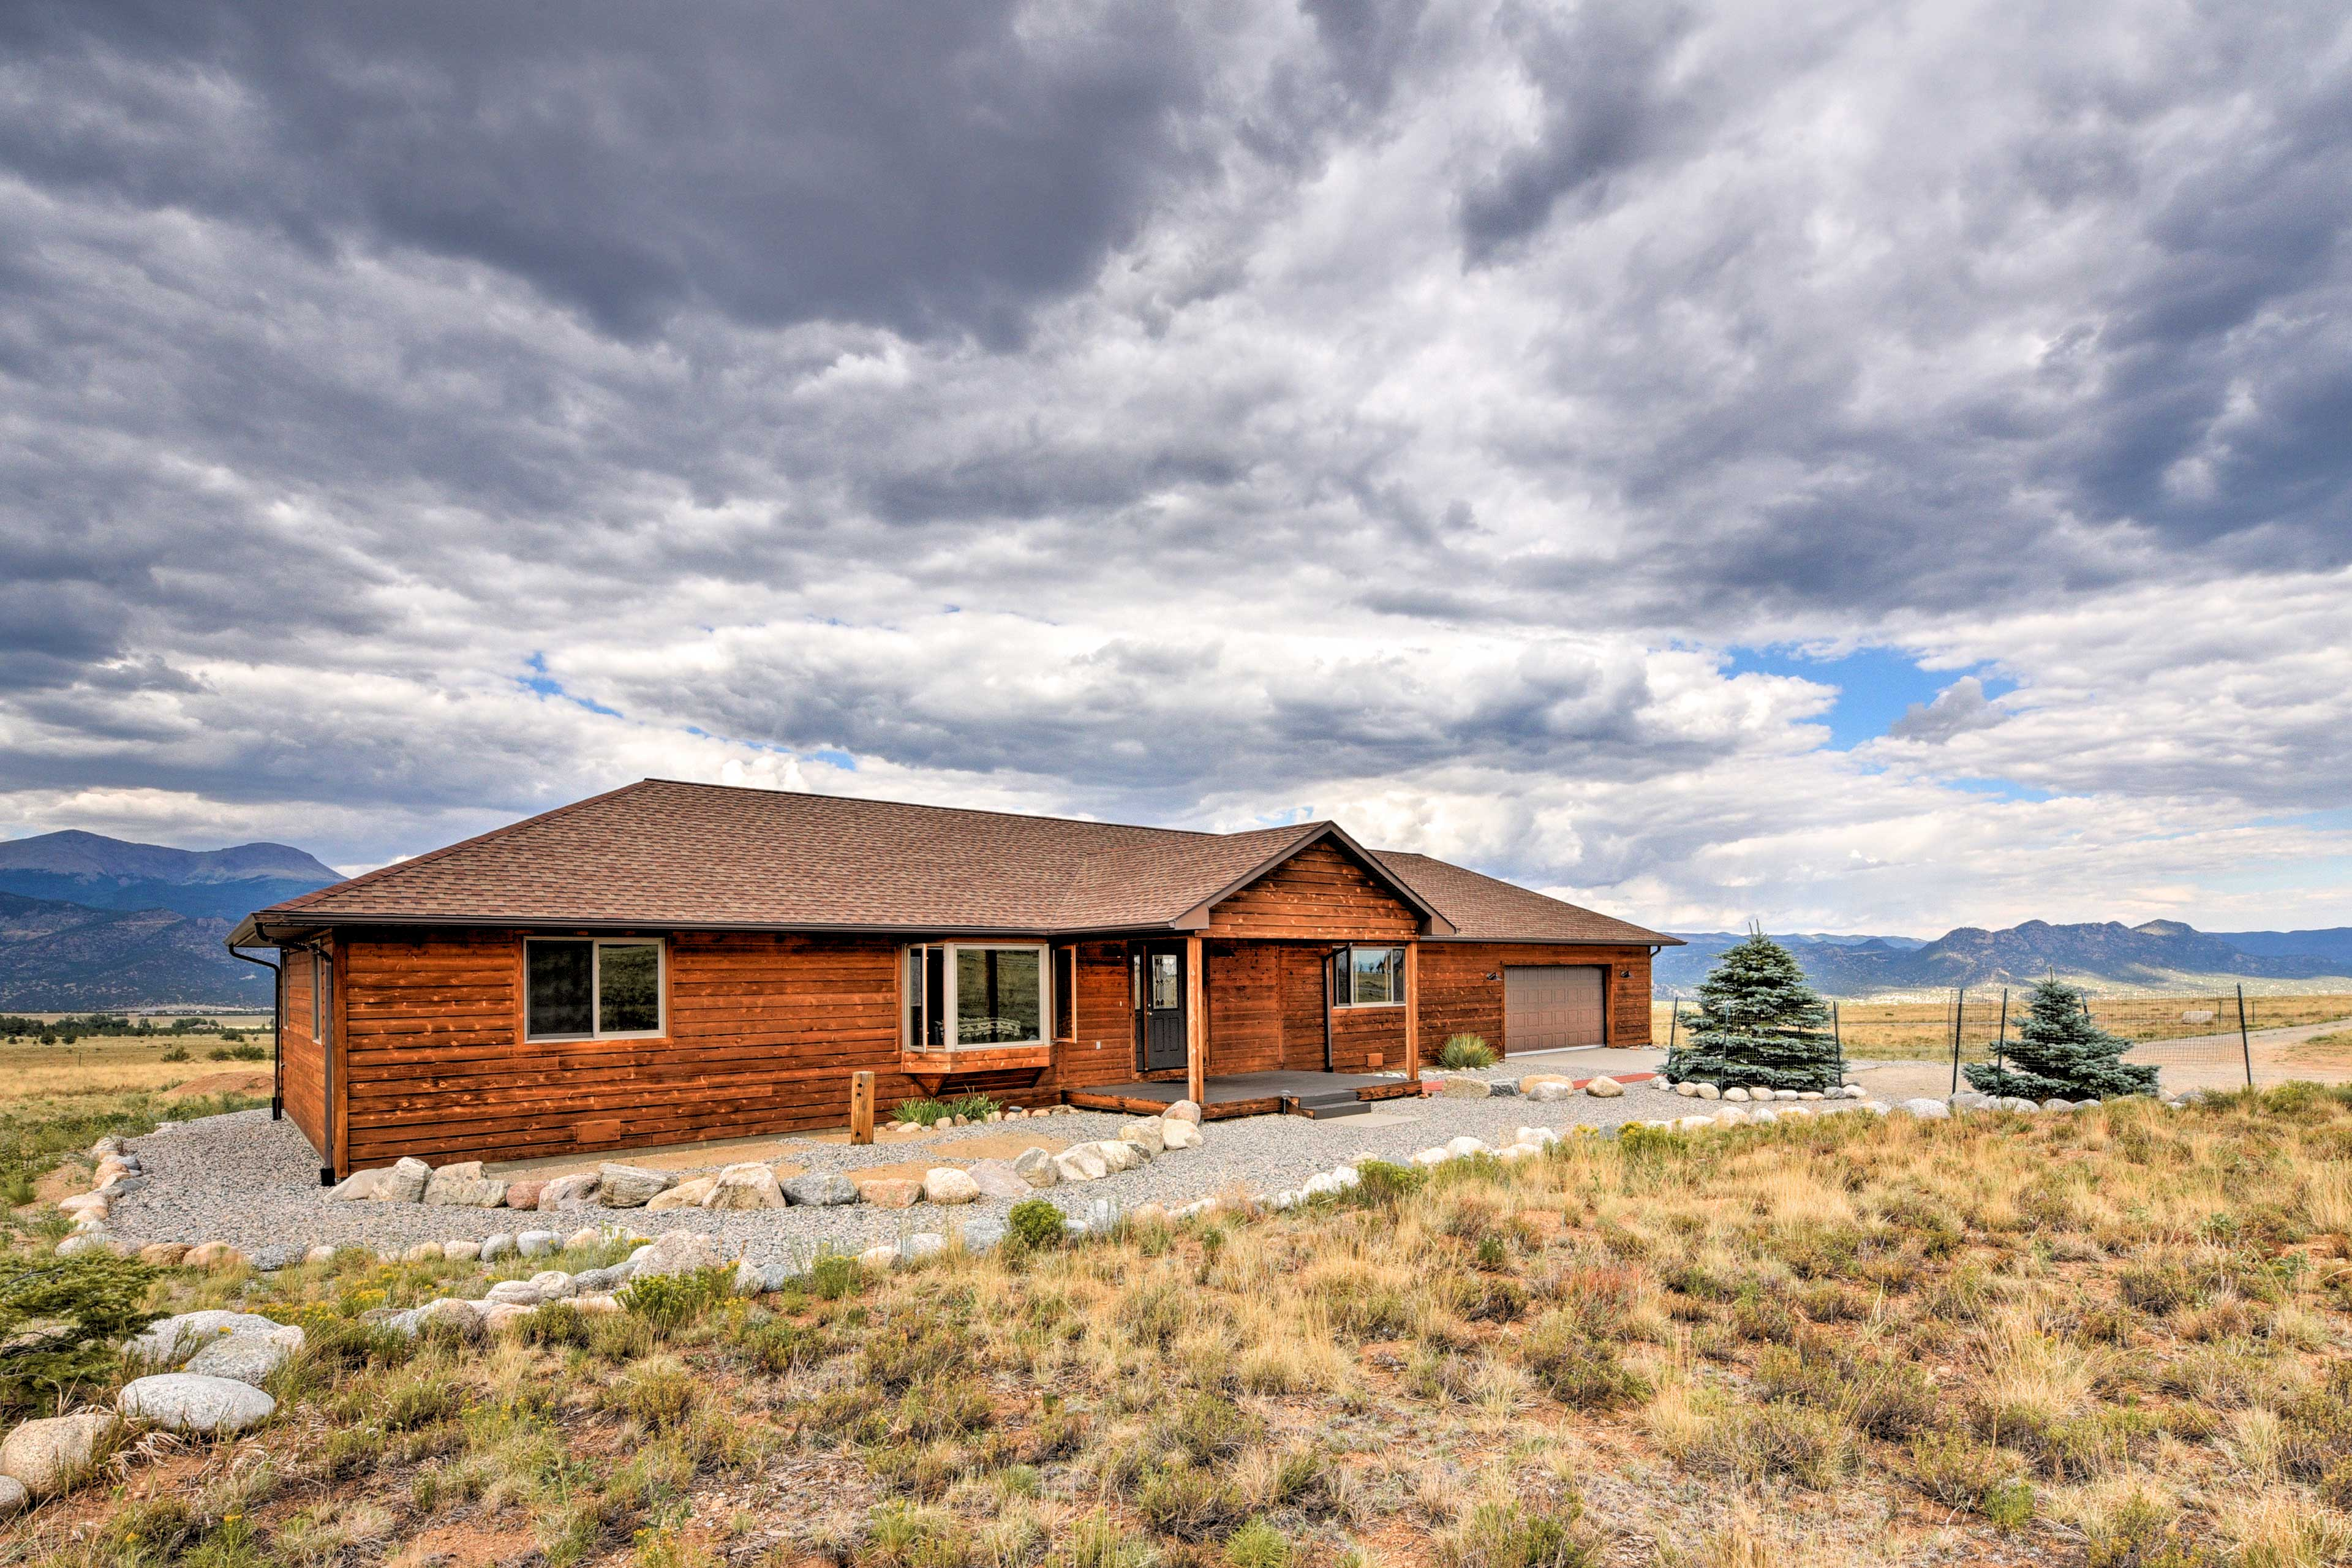 This ranch-style home sites on over 6 acres of private land.